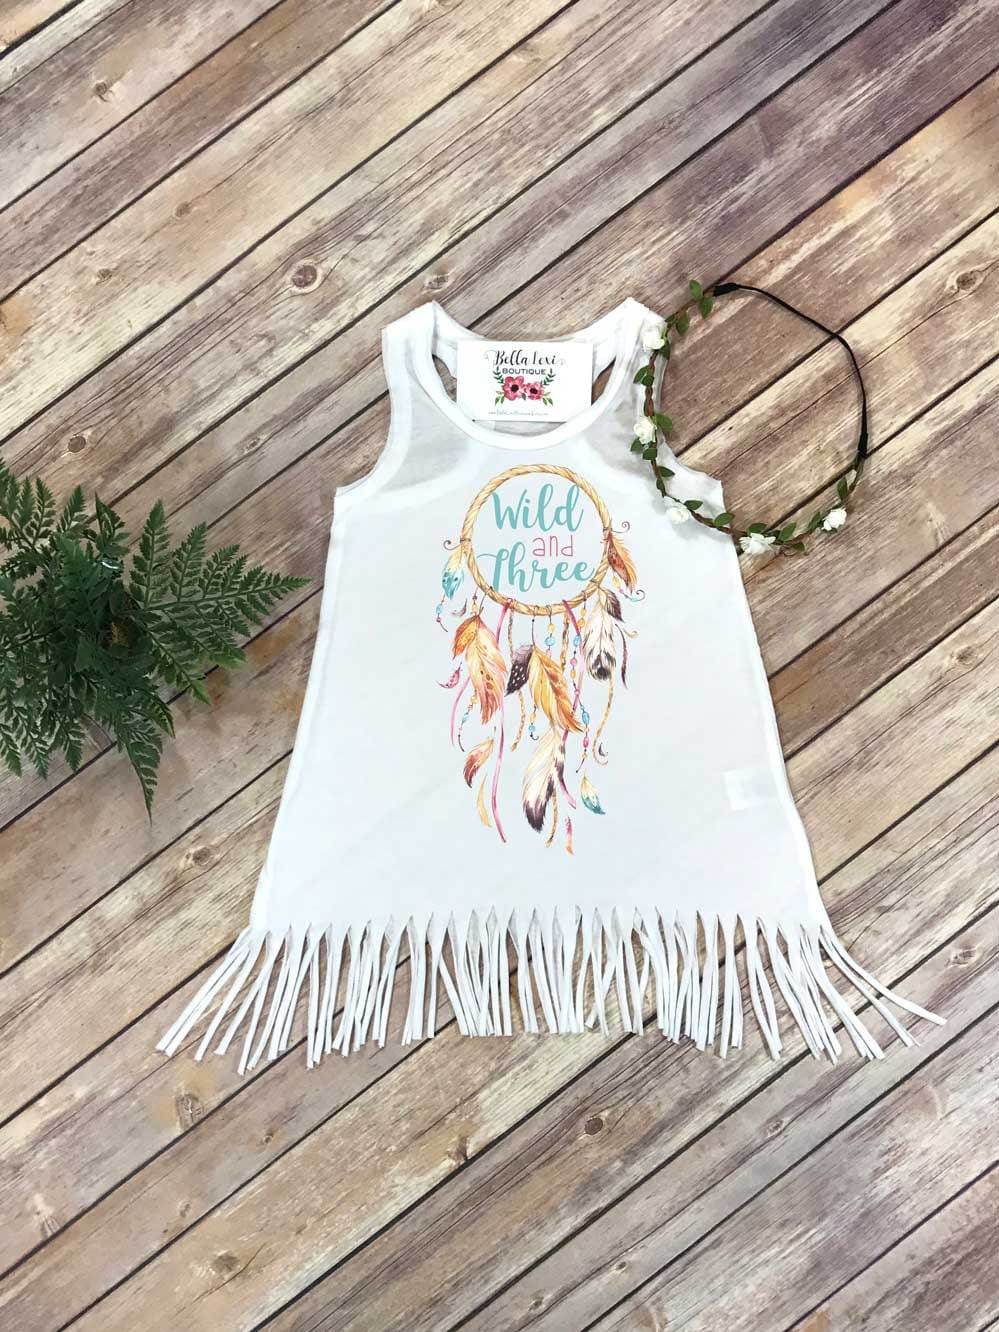 Third Birthday, Wild and Three, Girl Birthday Dress, 3rd Birthday, Fringe Birthday Dress